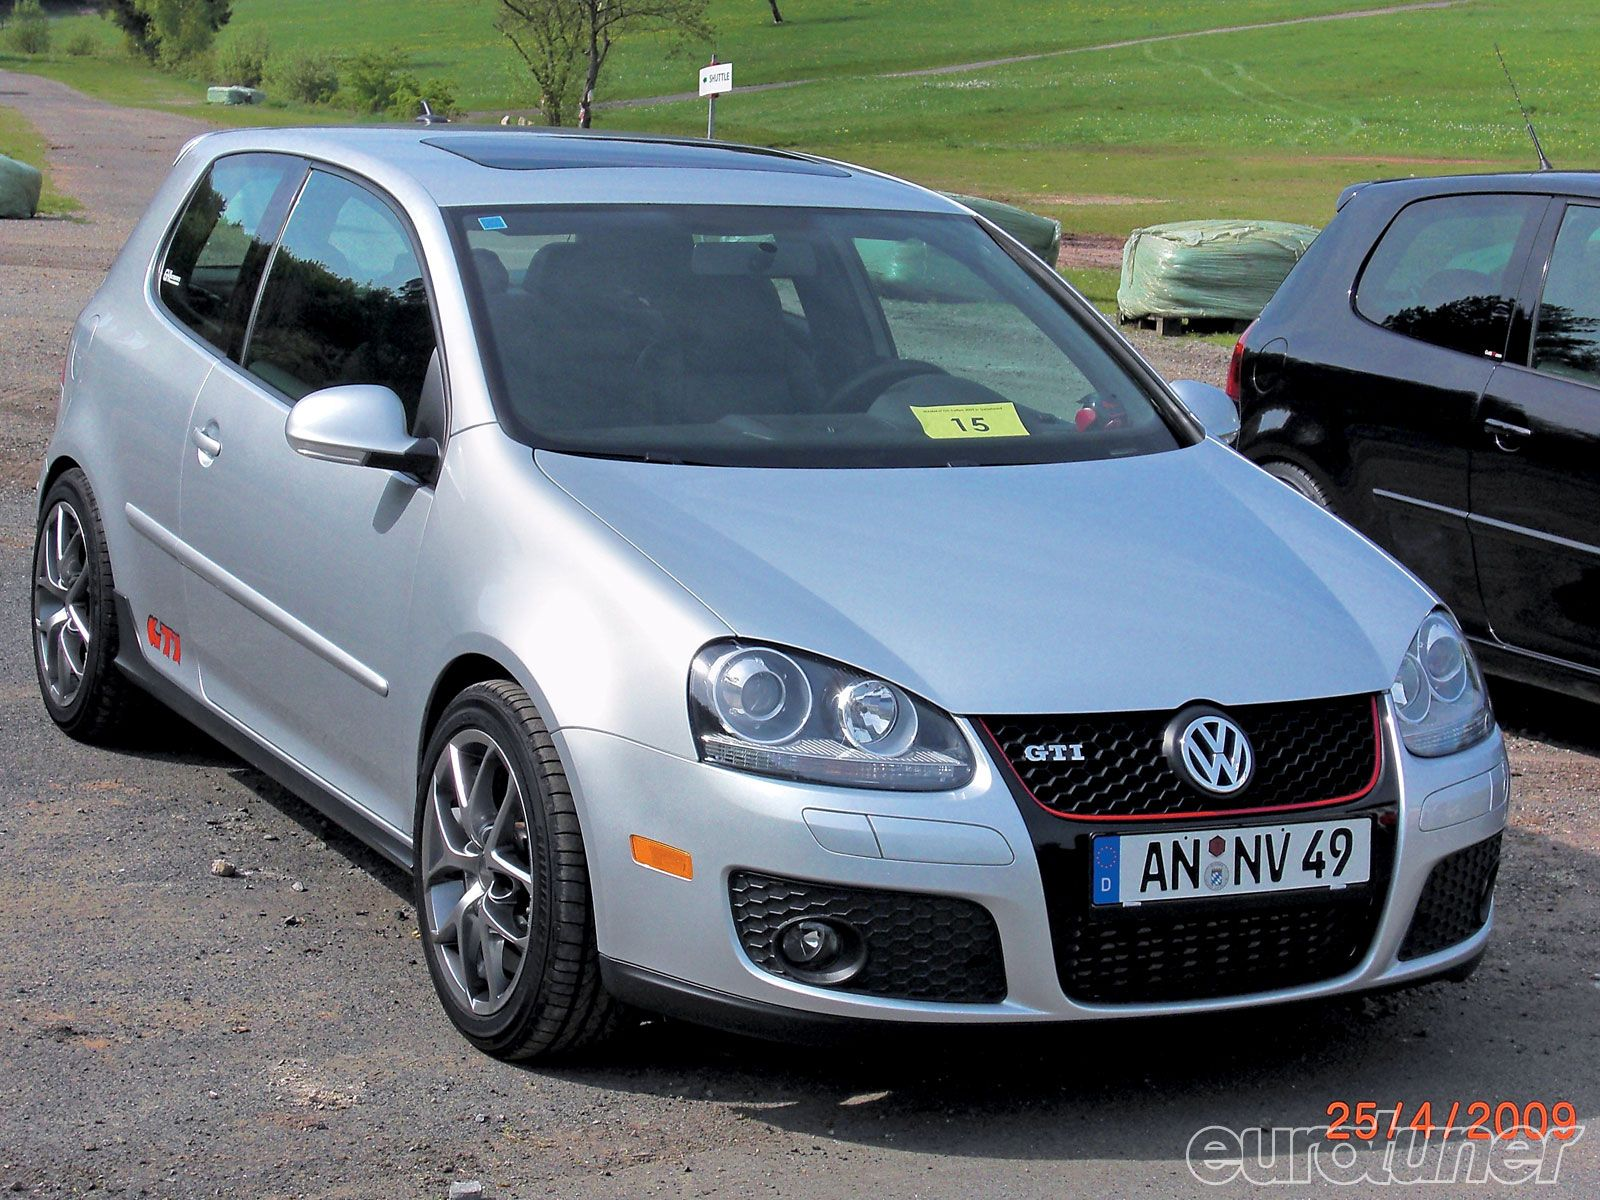 2001 Vw Golf 2001 Volkswagen Golf Readers Rides 2007 Vw Gti Photo 7